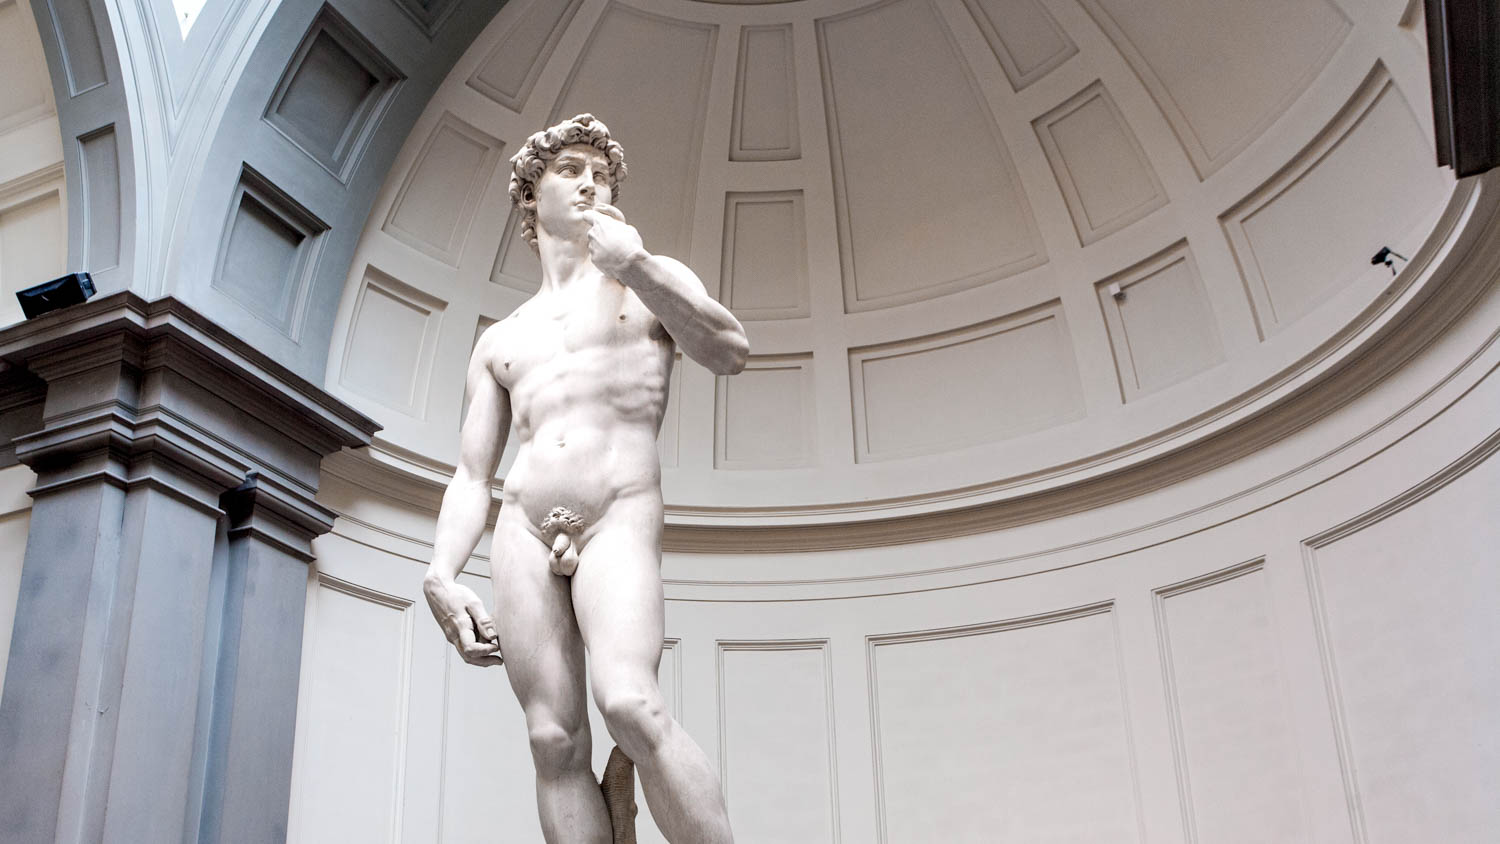 Michelangelo was the third sculptor to work on him